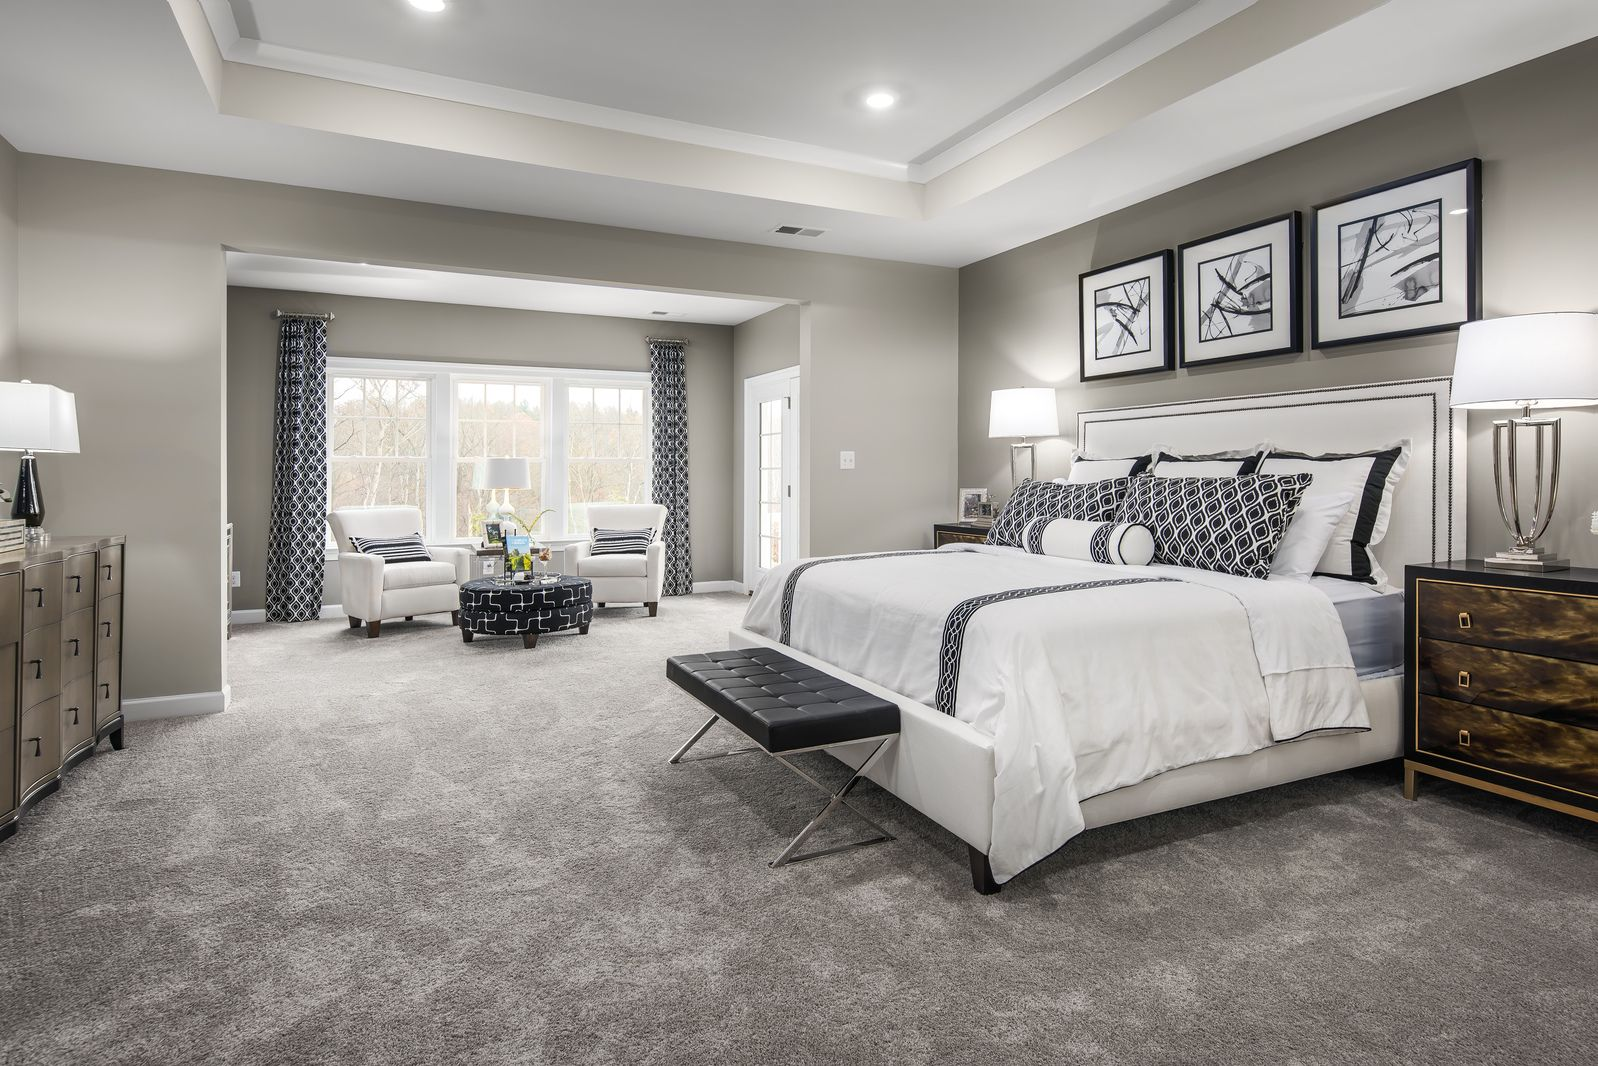 Bedroom featured in the Clifton Park II By NVHomes in Philadelphia, PA